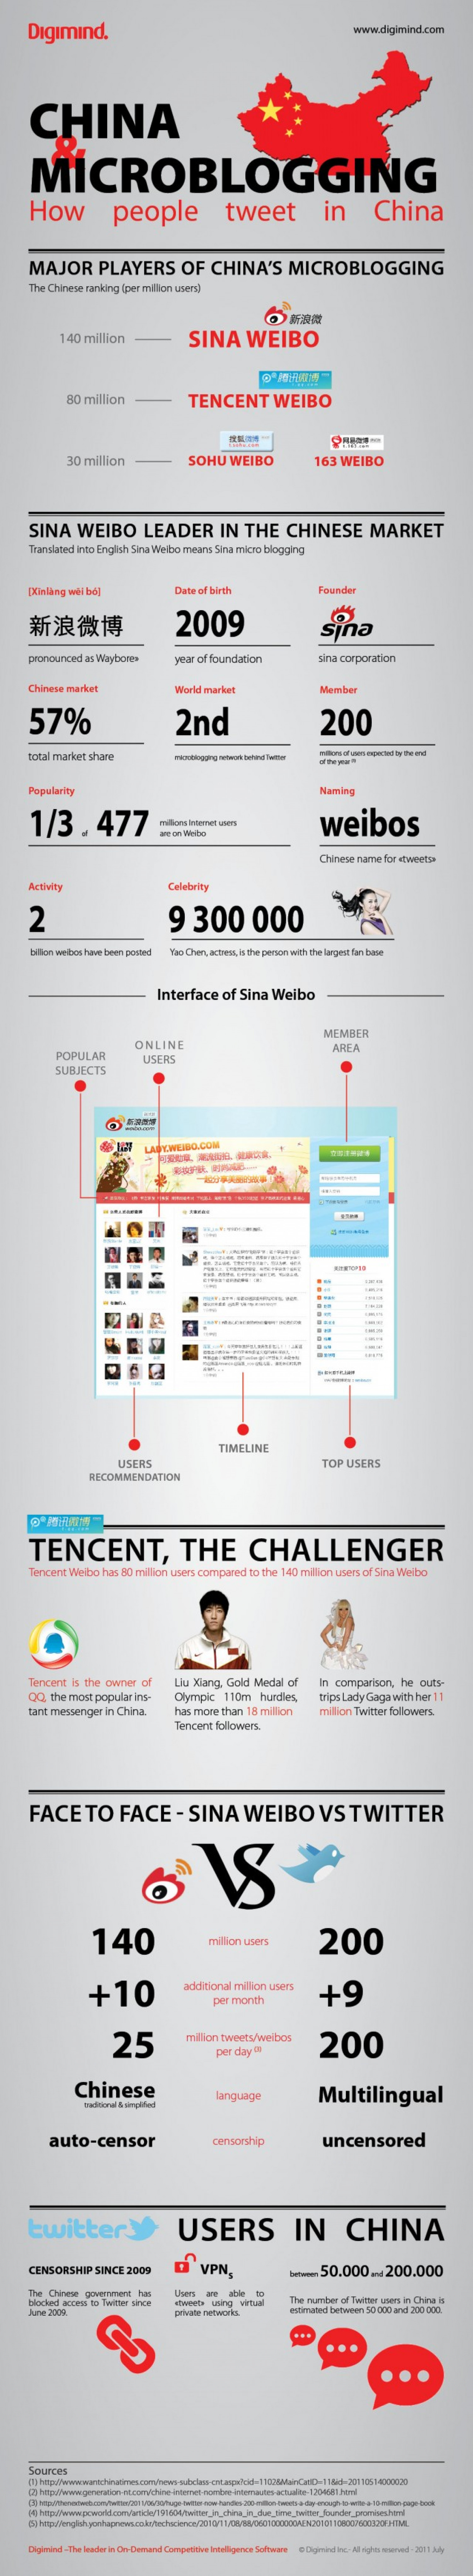 How to 'tweet' in China Infographic